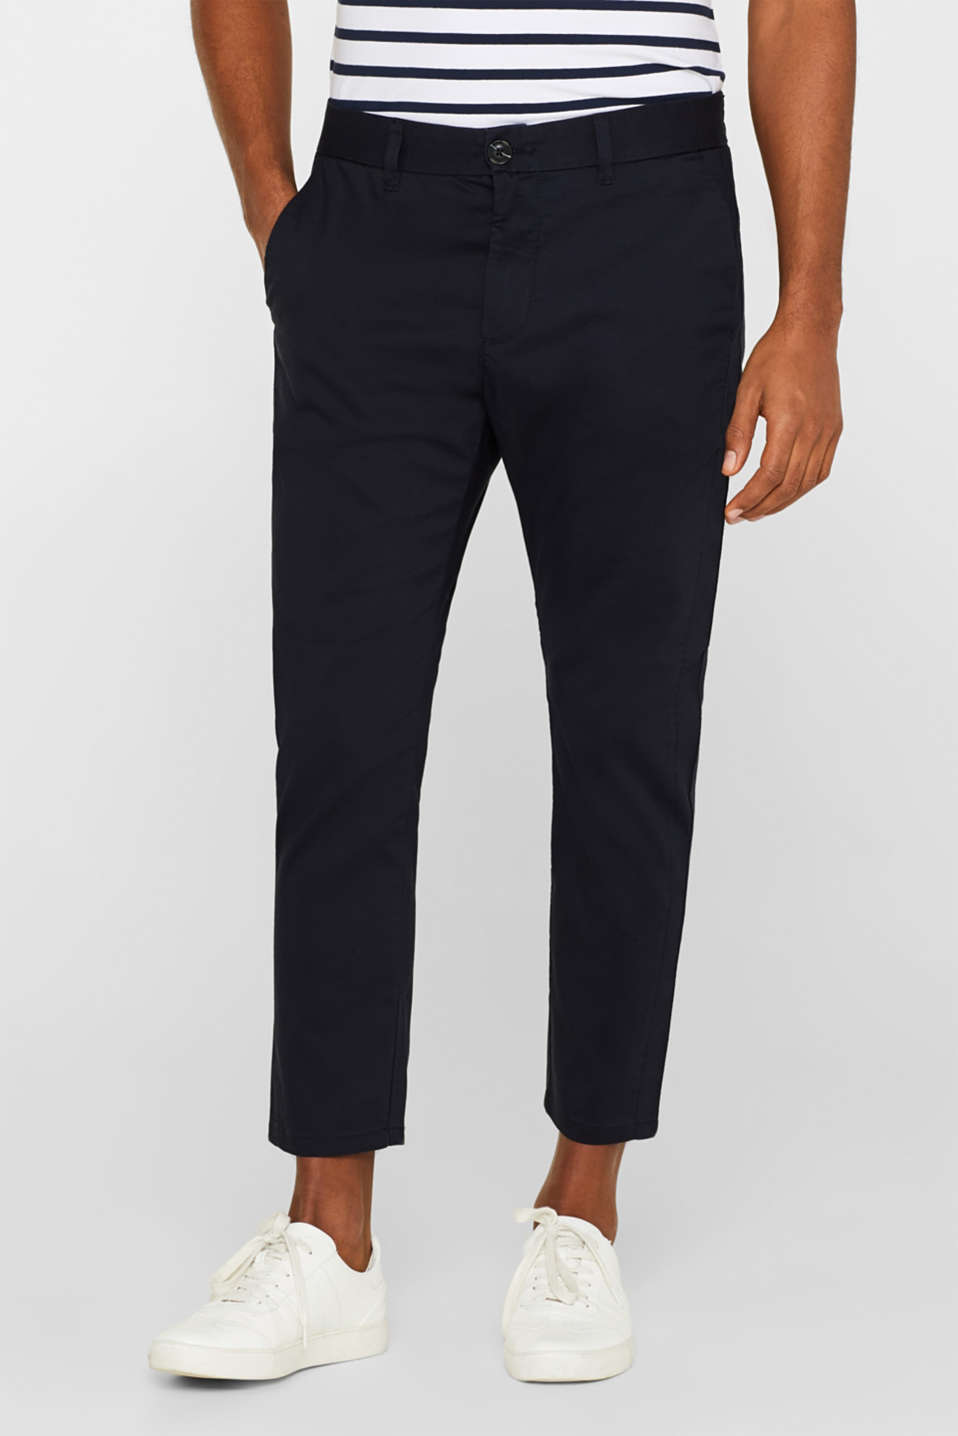 Esprit - Cropped trousers with an elasticated waistband